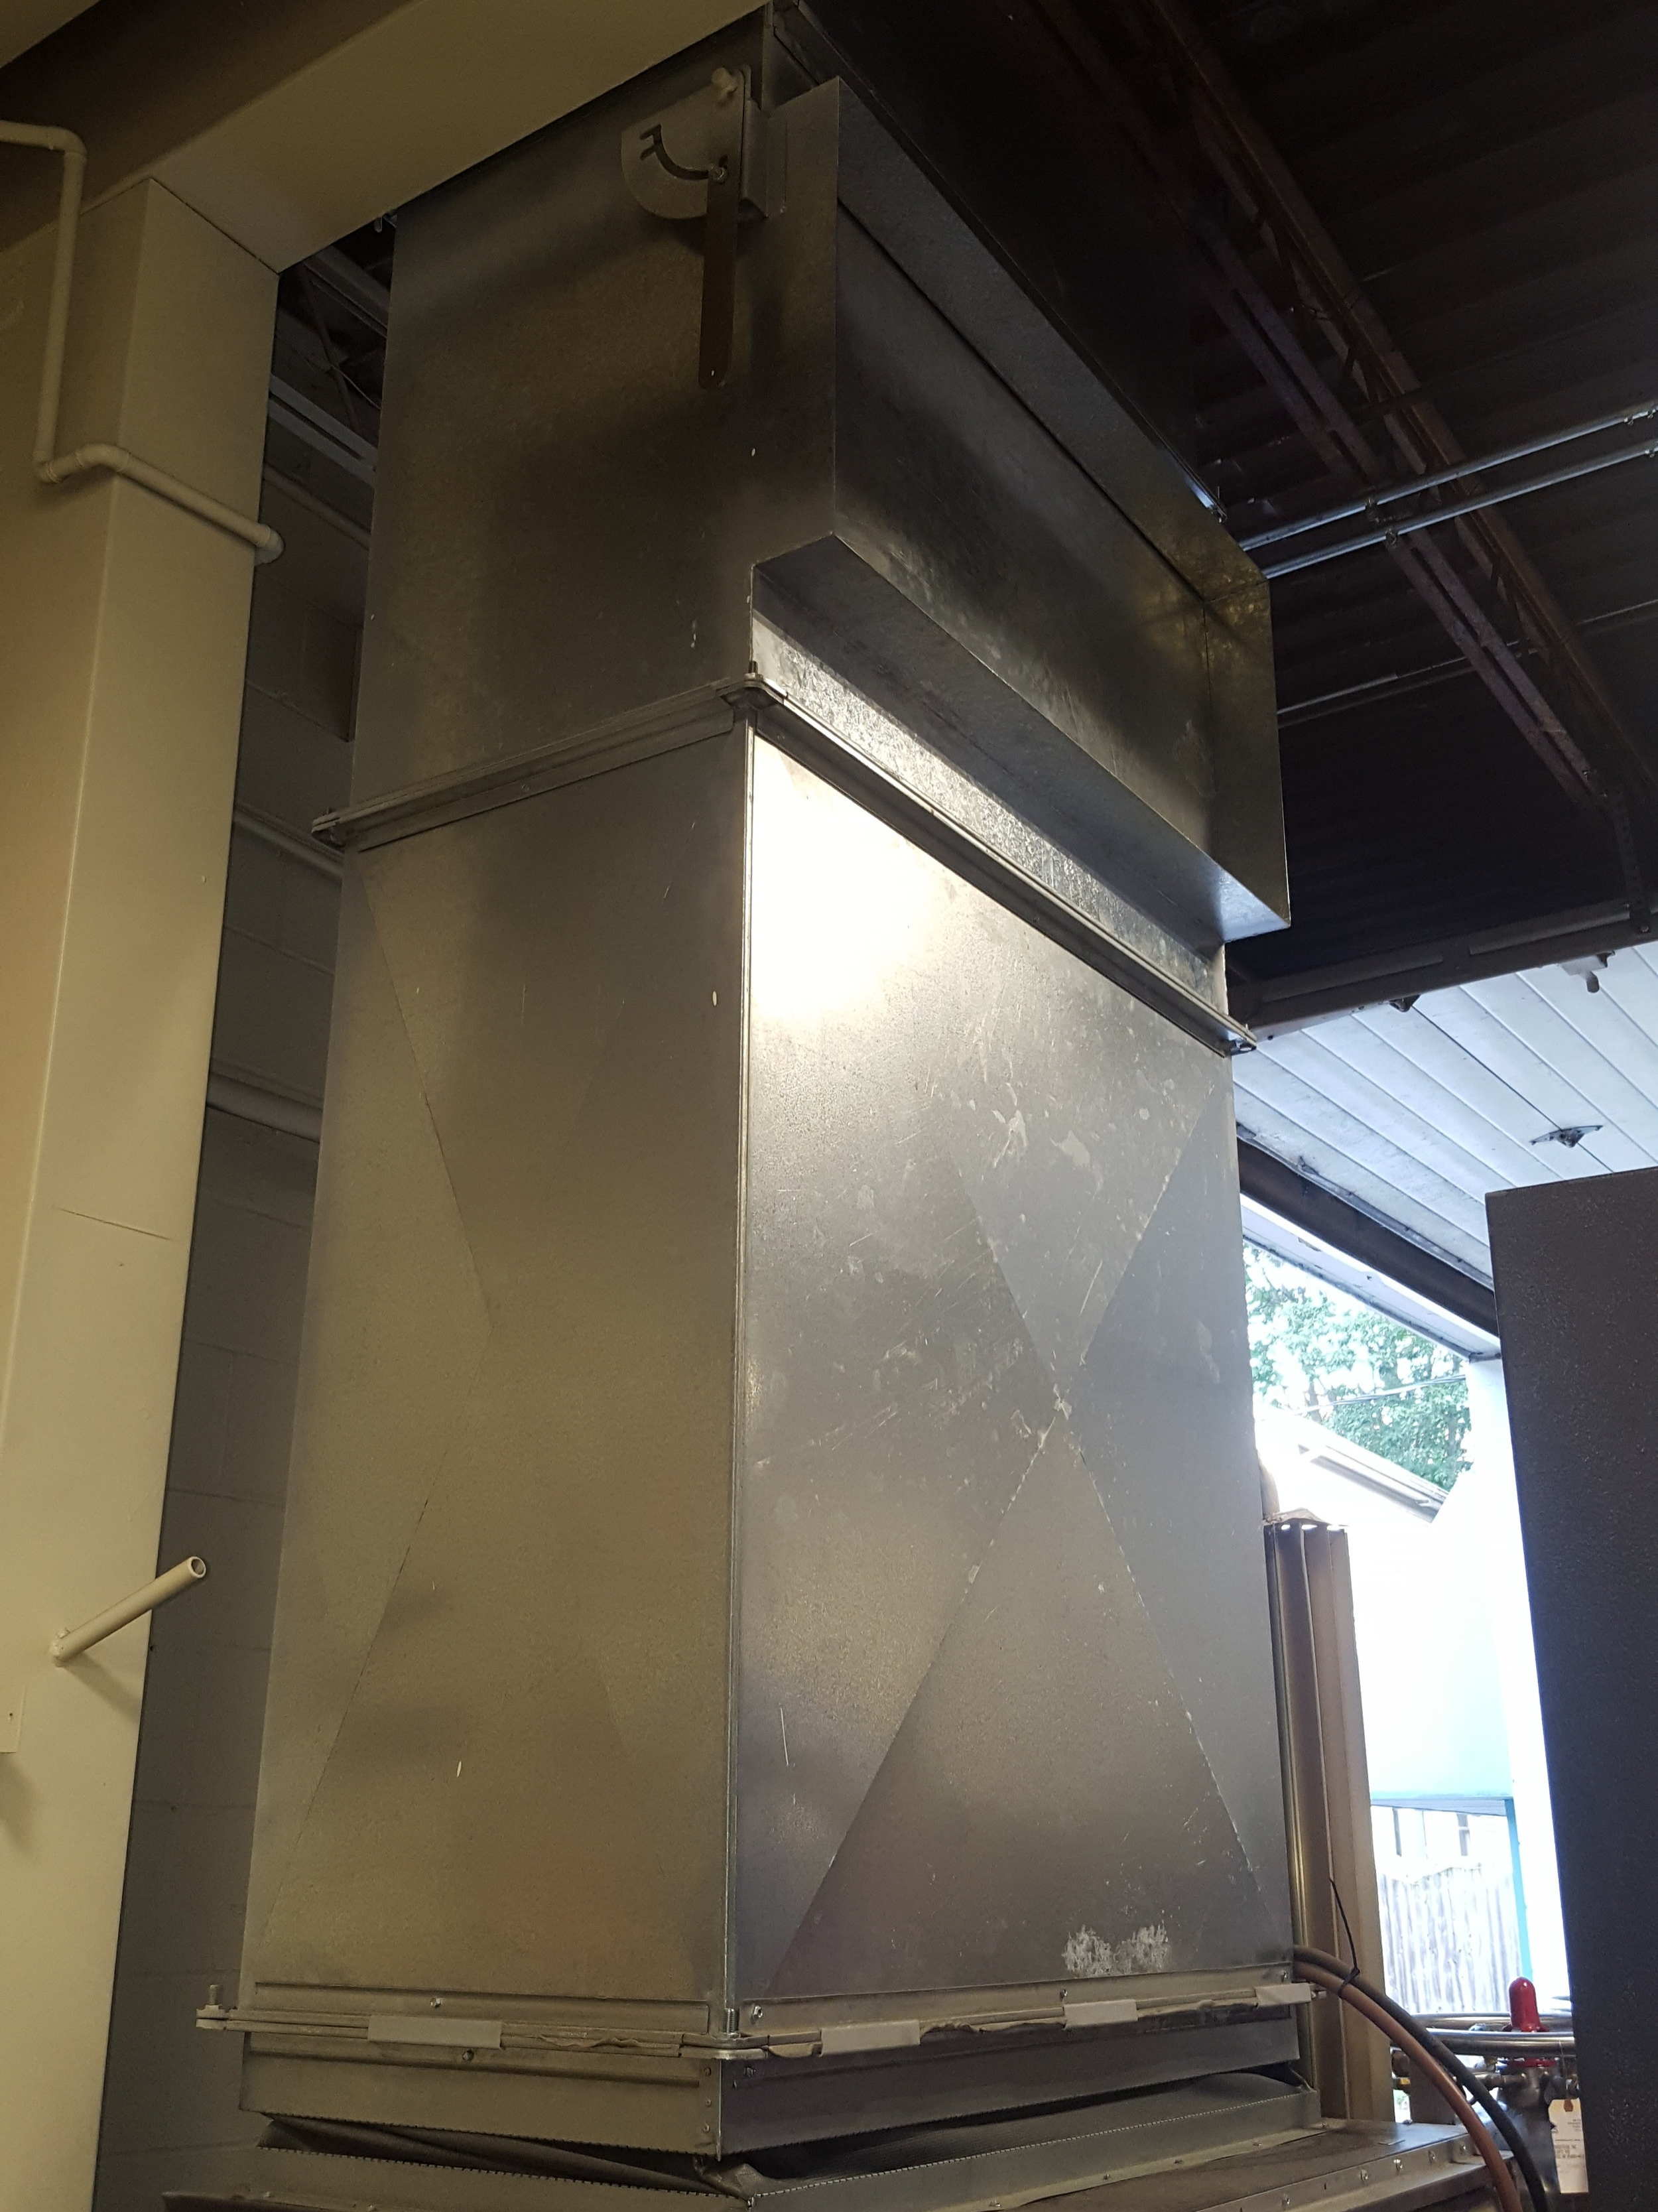 Custom exhaust duct work to carry chiller system heat out of the building in the summer and inside in the winter.